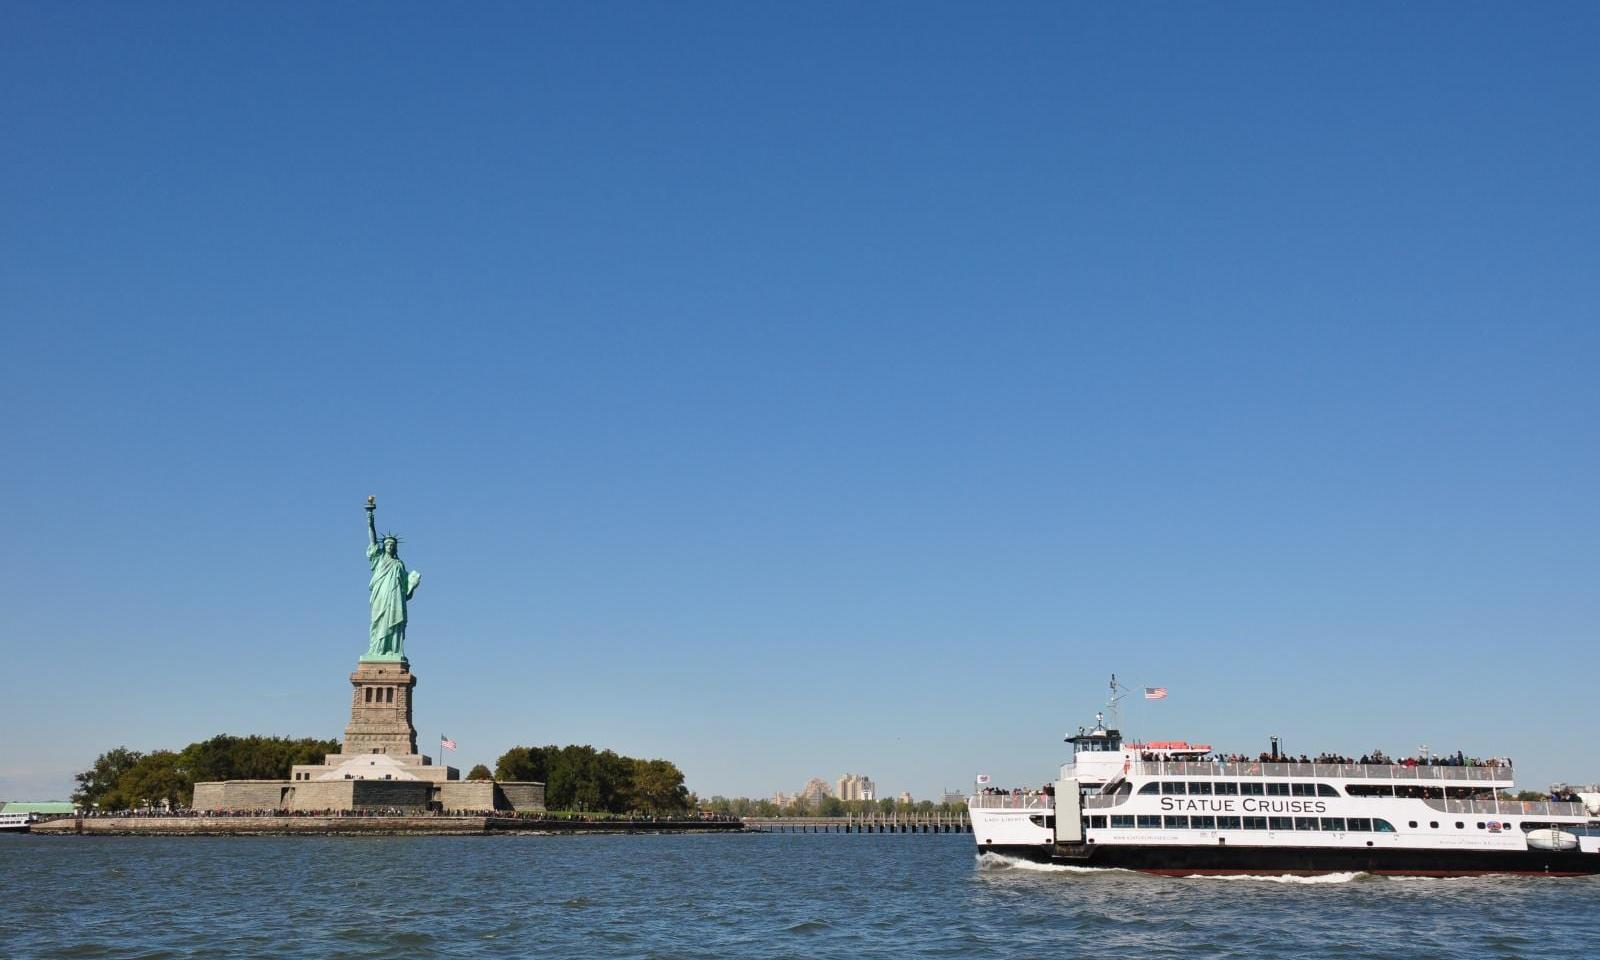 NYC Cruise Boat Tour Statue of Liberty